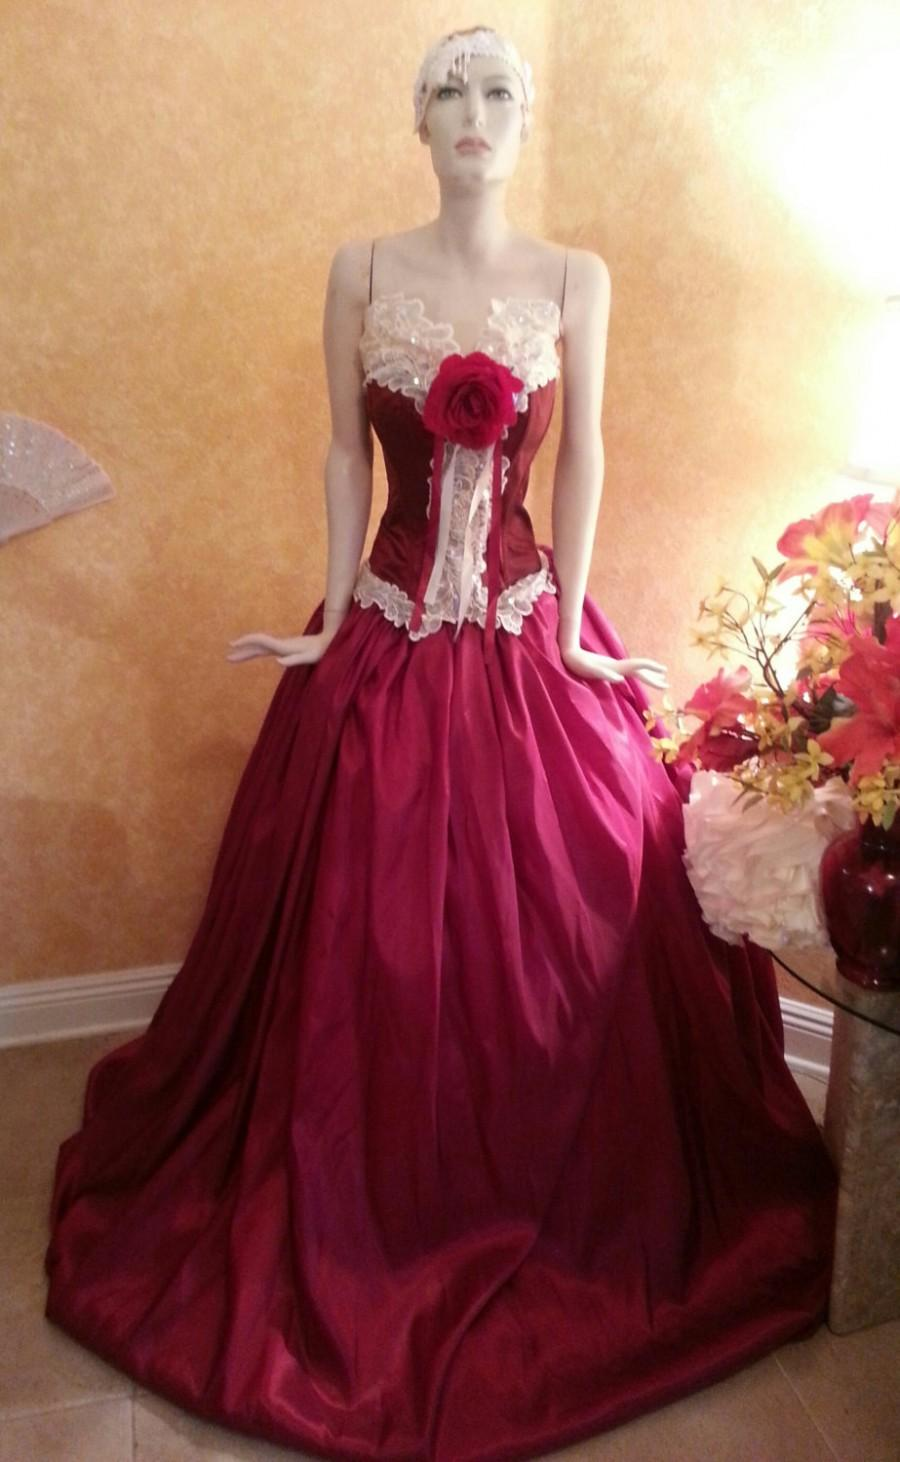 Mariage - Sample Gown Listing / Ruby Middle Eastern Indian Goddess Vintage Victorian Inspired Taffeta Bridal Wedding Ballgown (All Sizes)